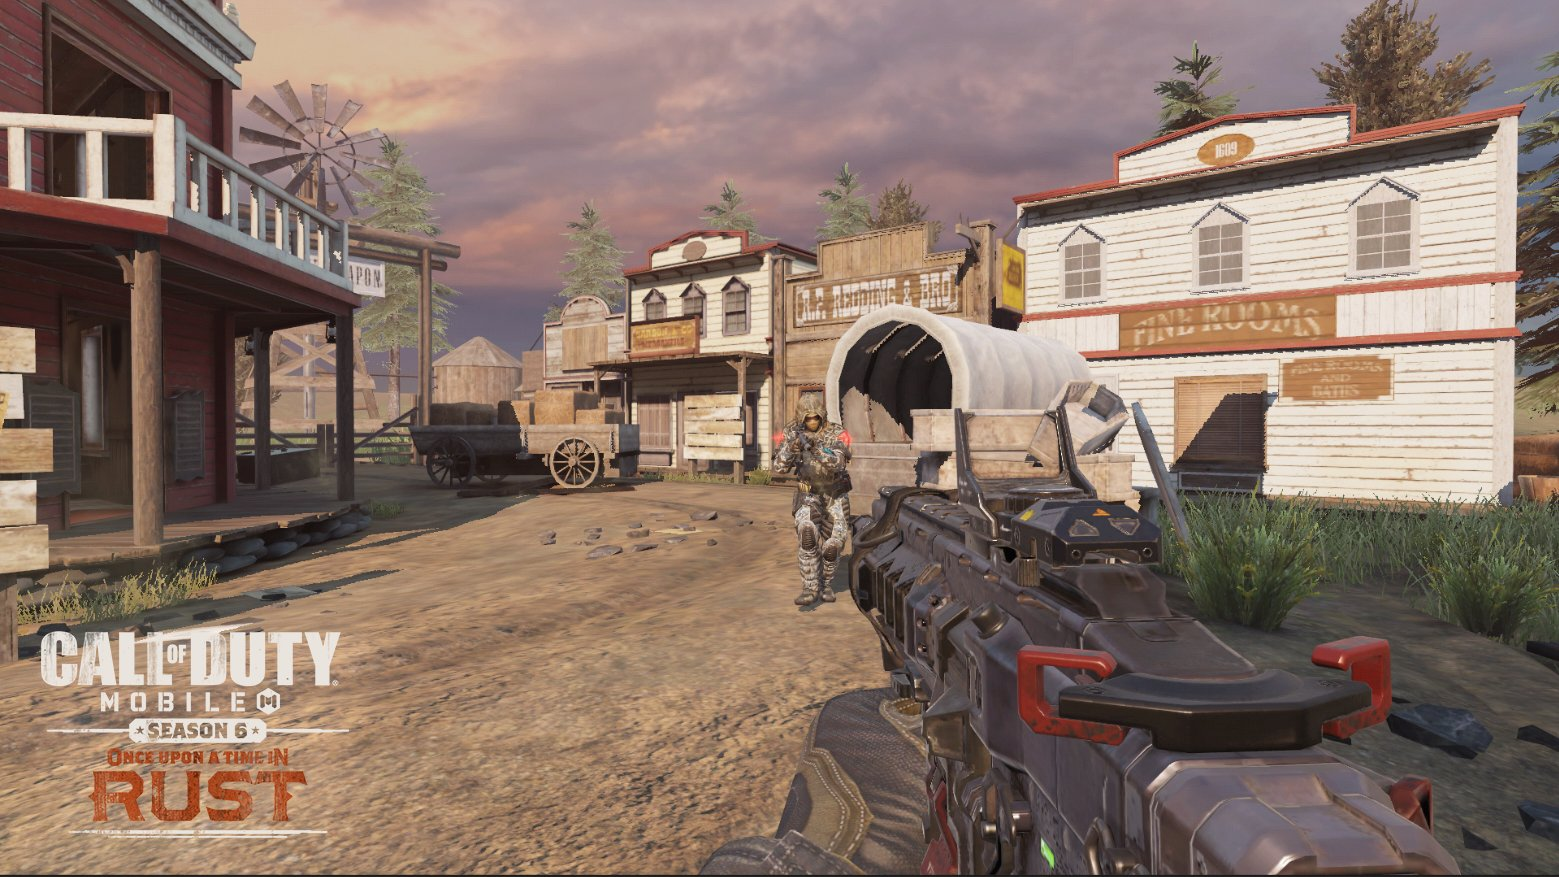 Call of Duty Mobile Season 6 New Map